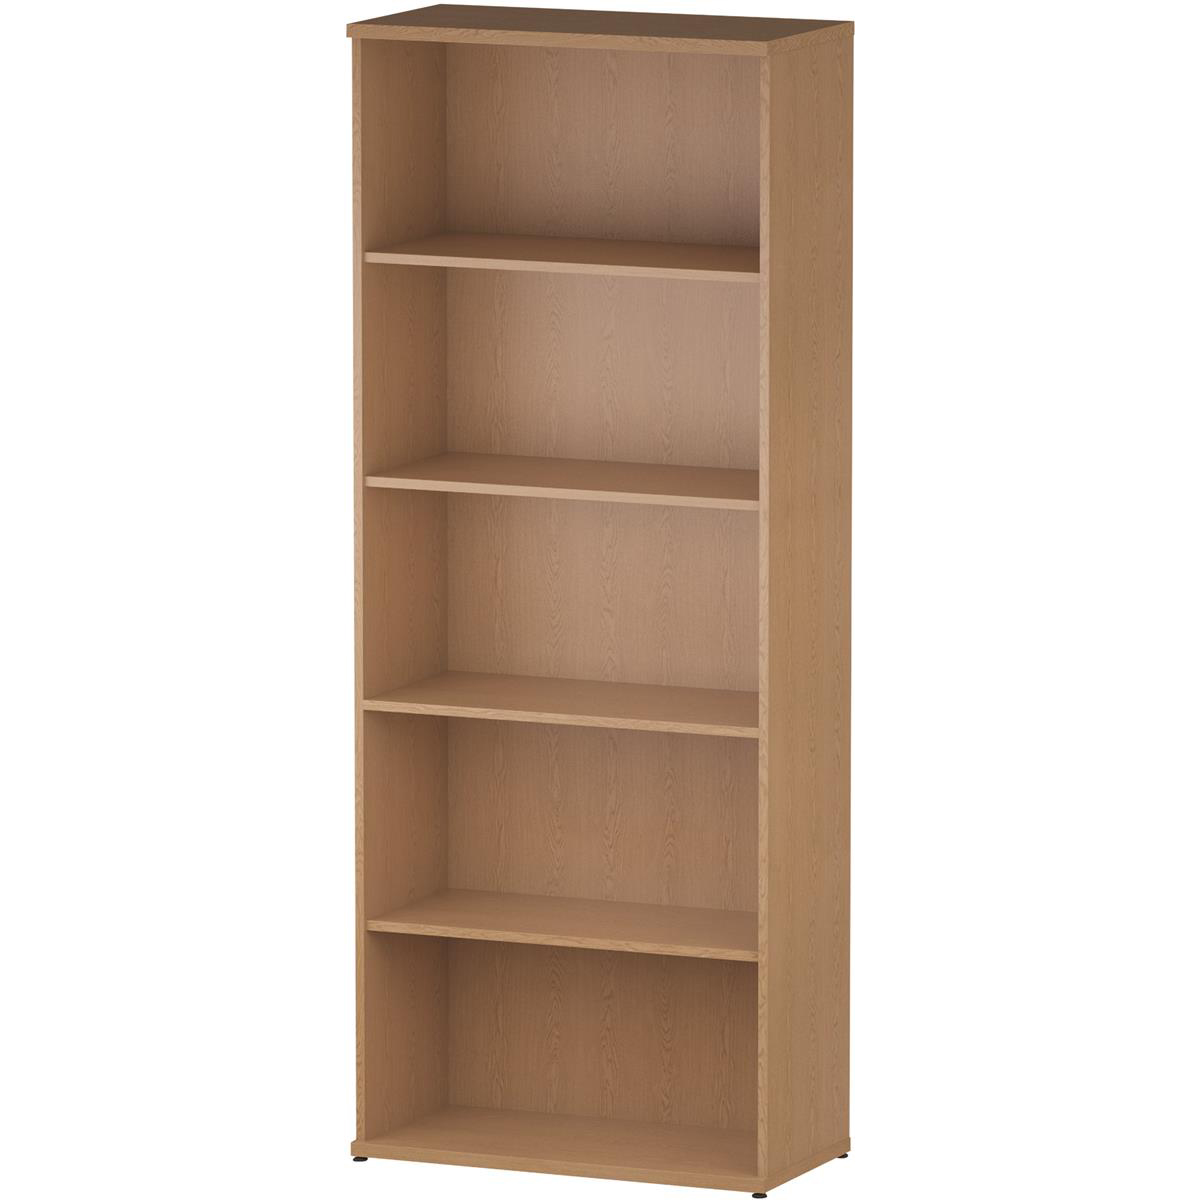 Bookcases Trexus Office Very High Bookcase 800x400x2000mm 4 Shelves Oak Ref I000760